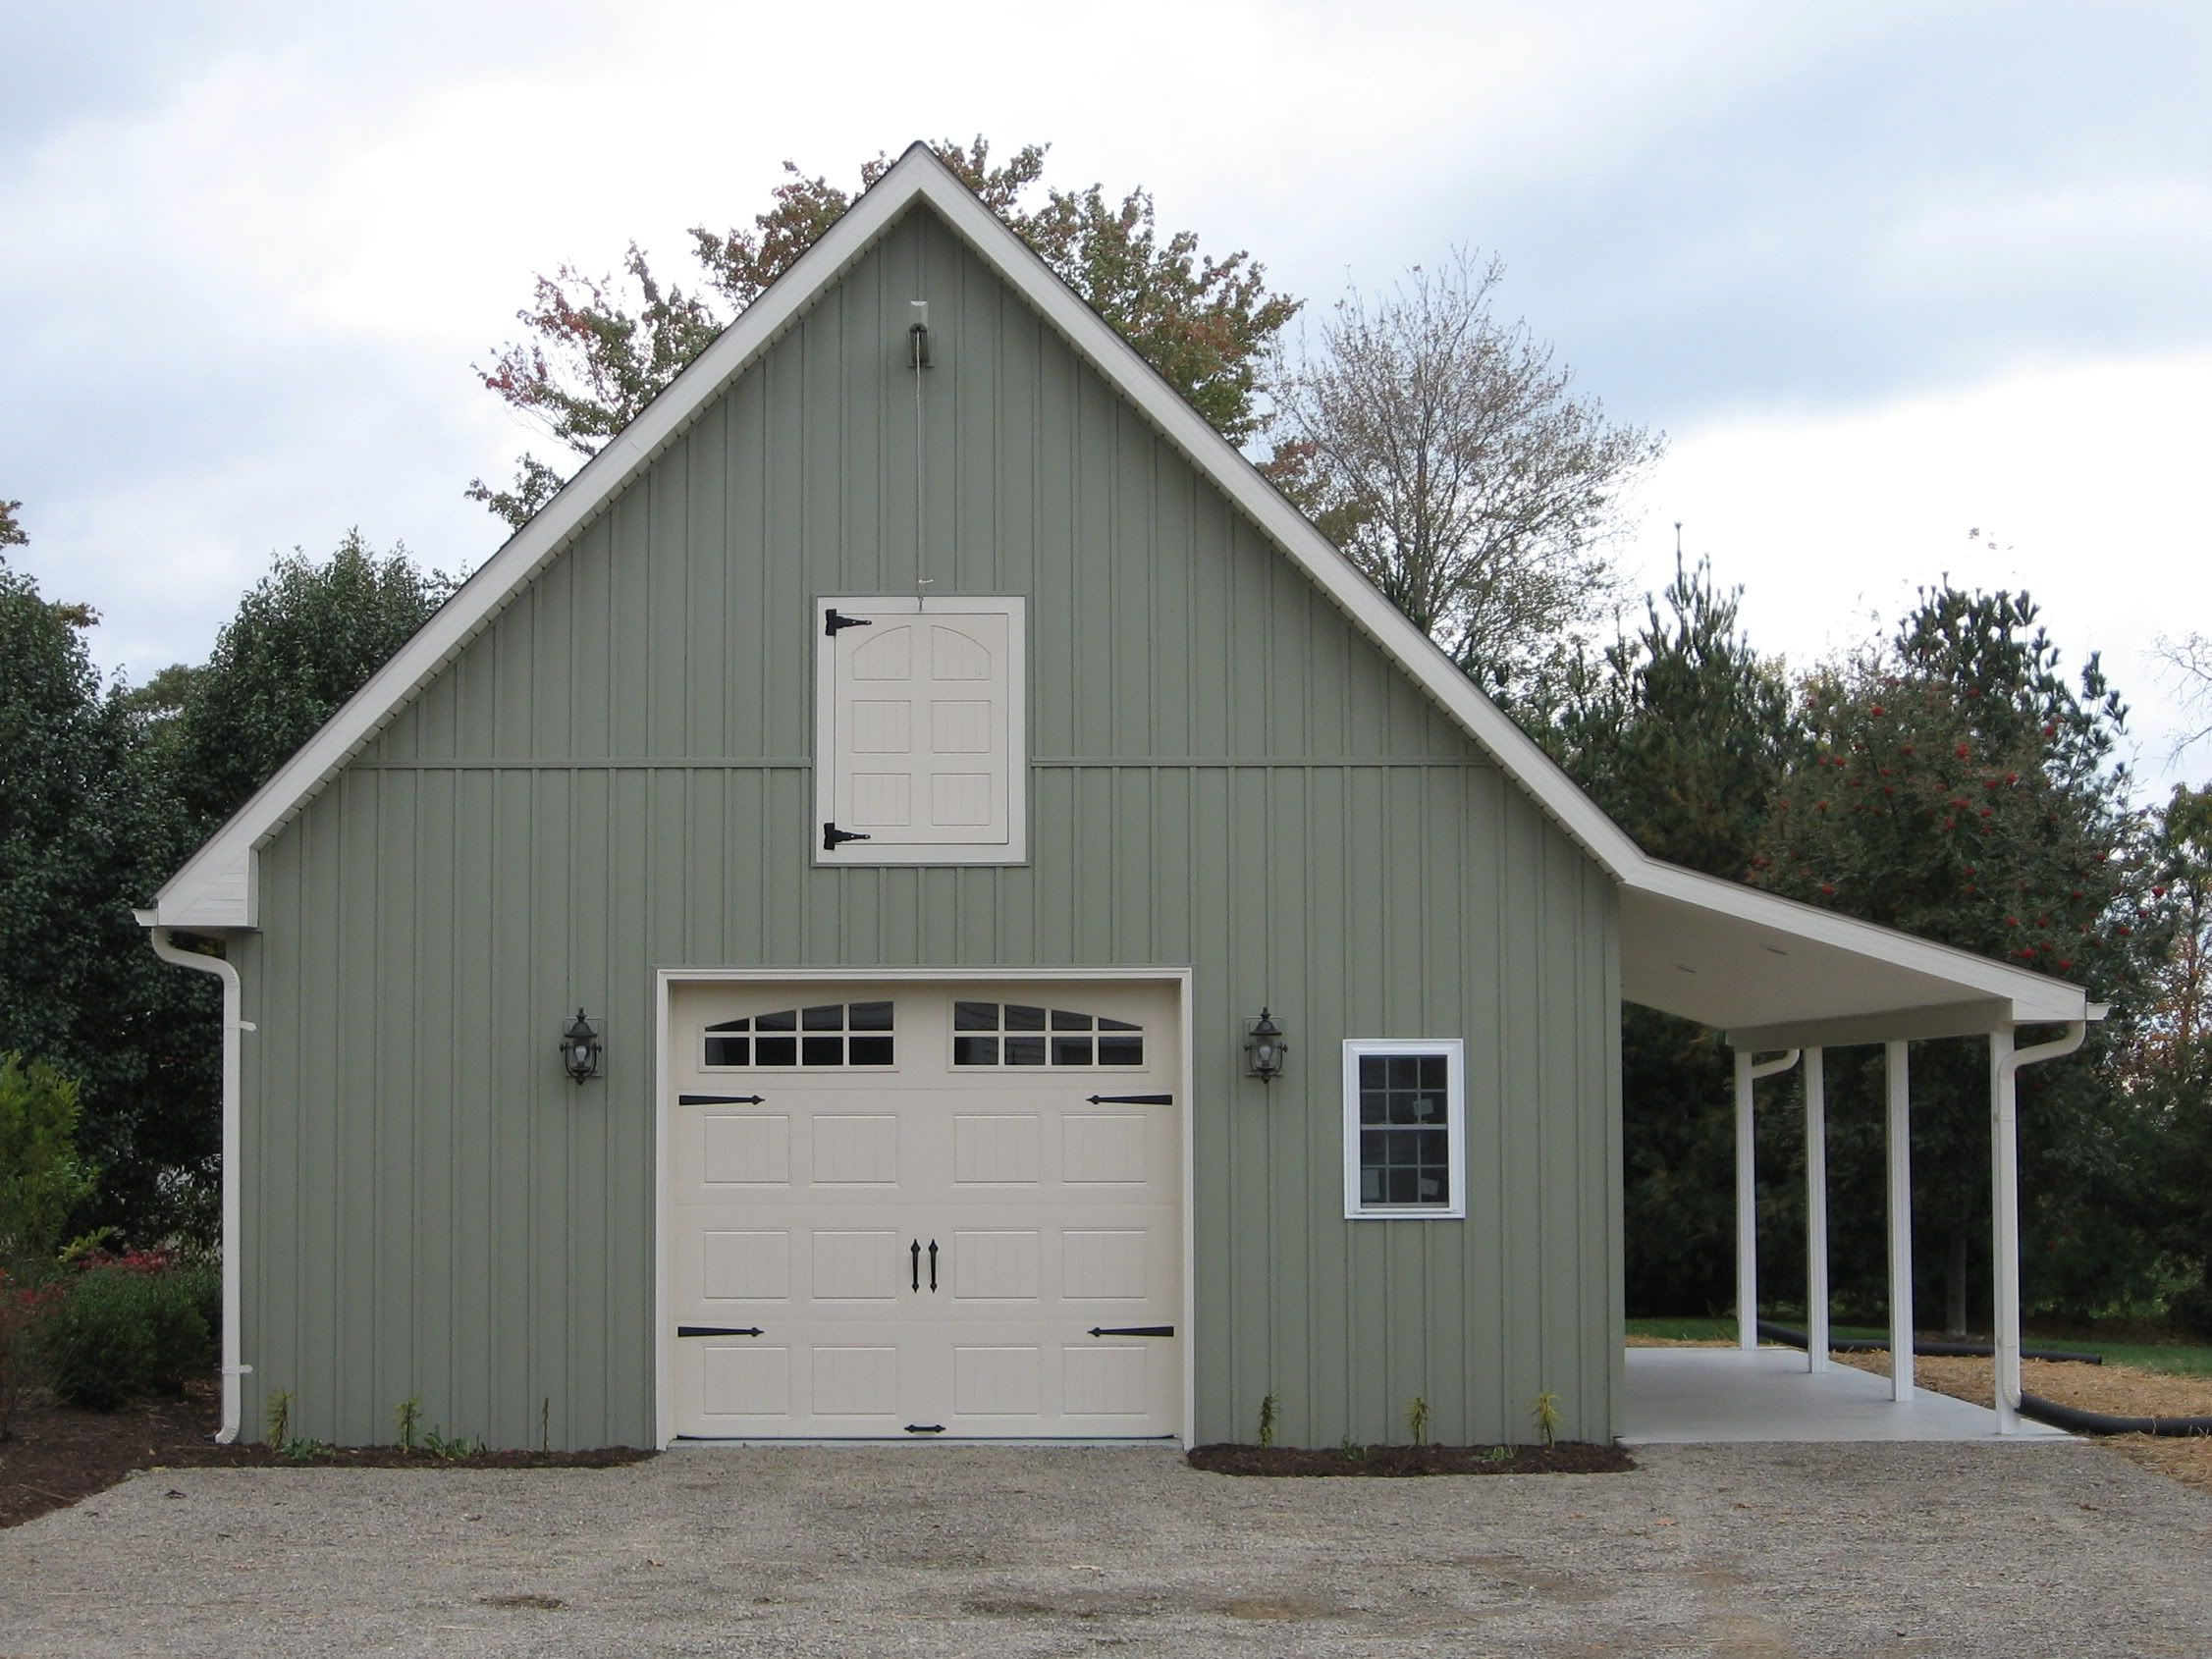 Jeepondecision S Image Building A Pole Barn Barn Design Barn Garage Plans